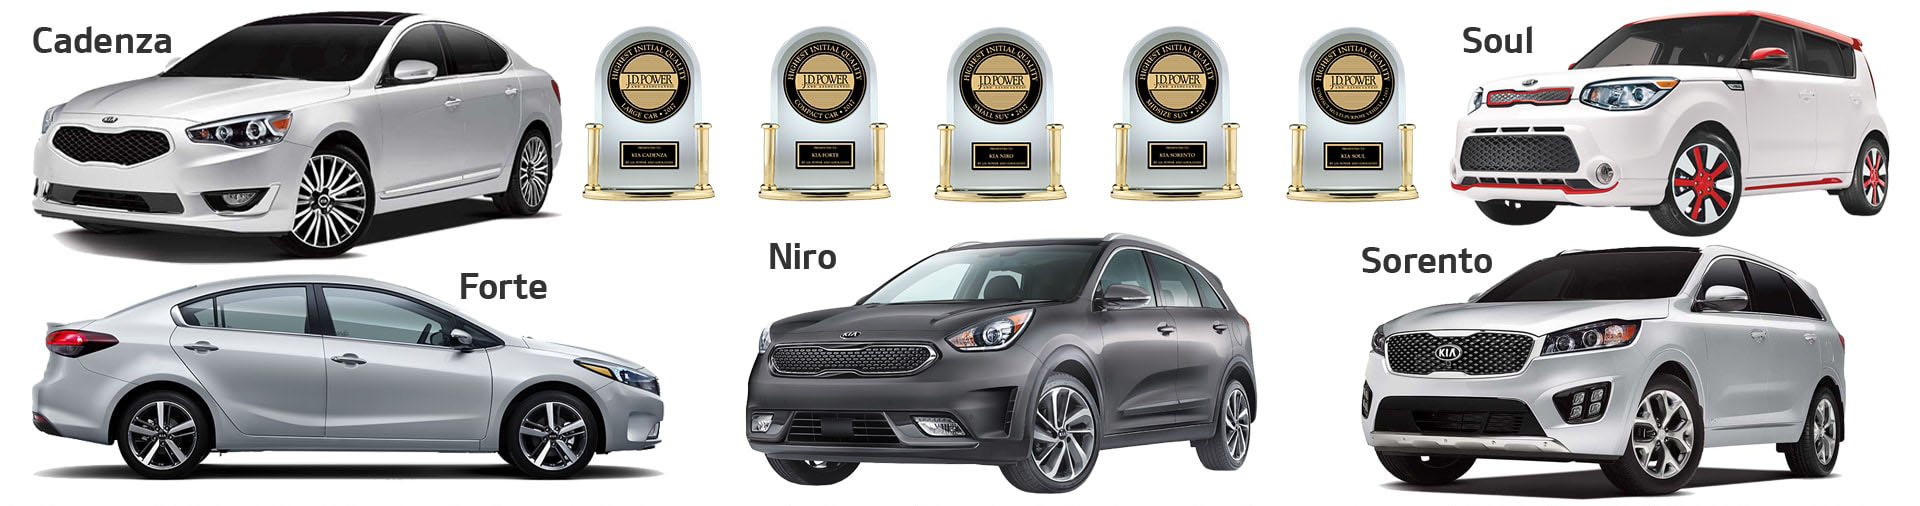 Kia's J.D. Power 2017 U.S. Initial Quality Study Winners